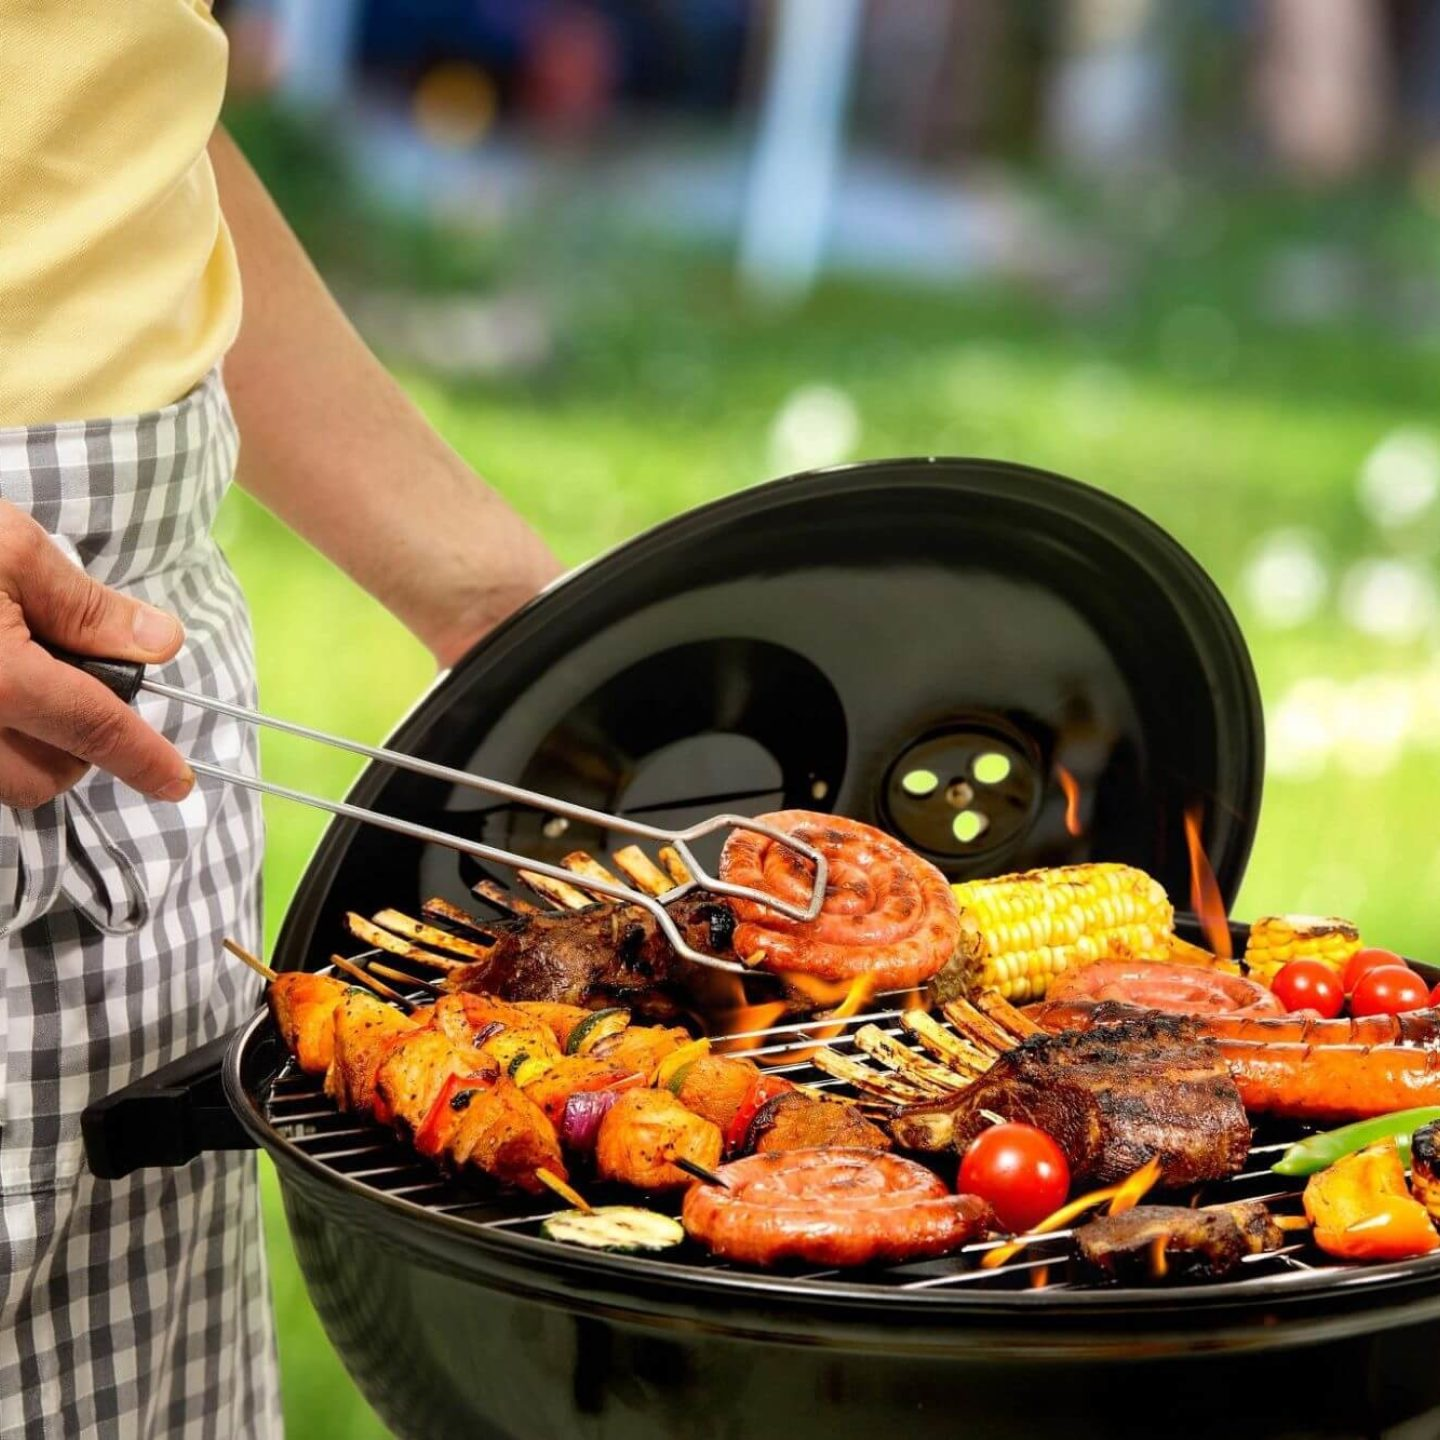 Barbecue grill with meat and veggies - Guide to Safely Firing Up the Barbeque | NSF International